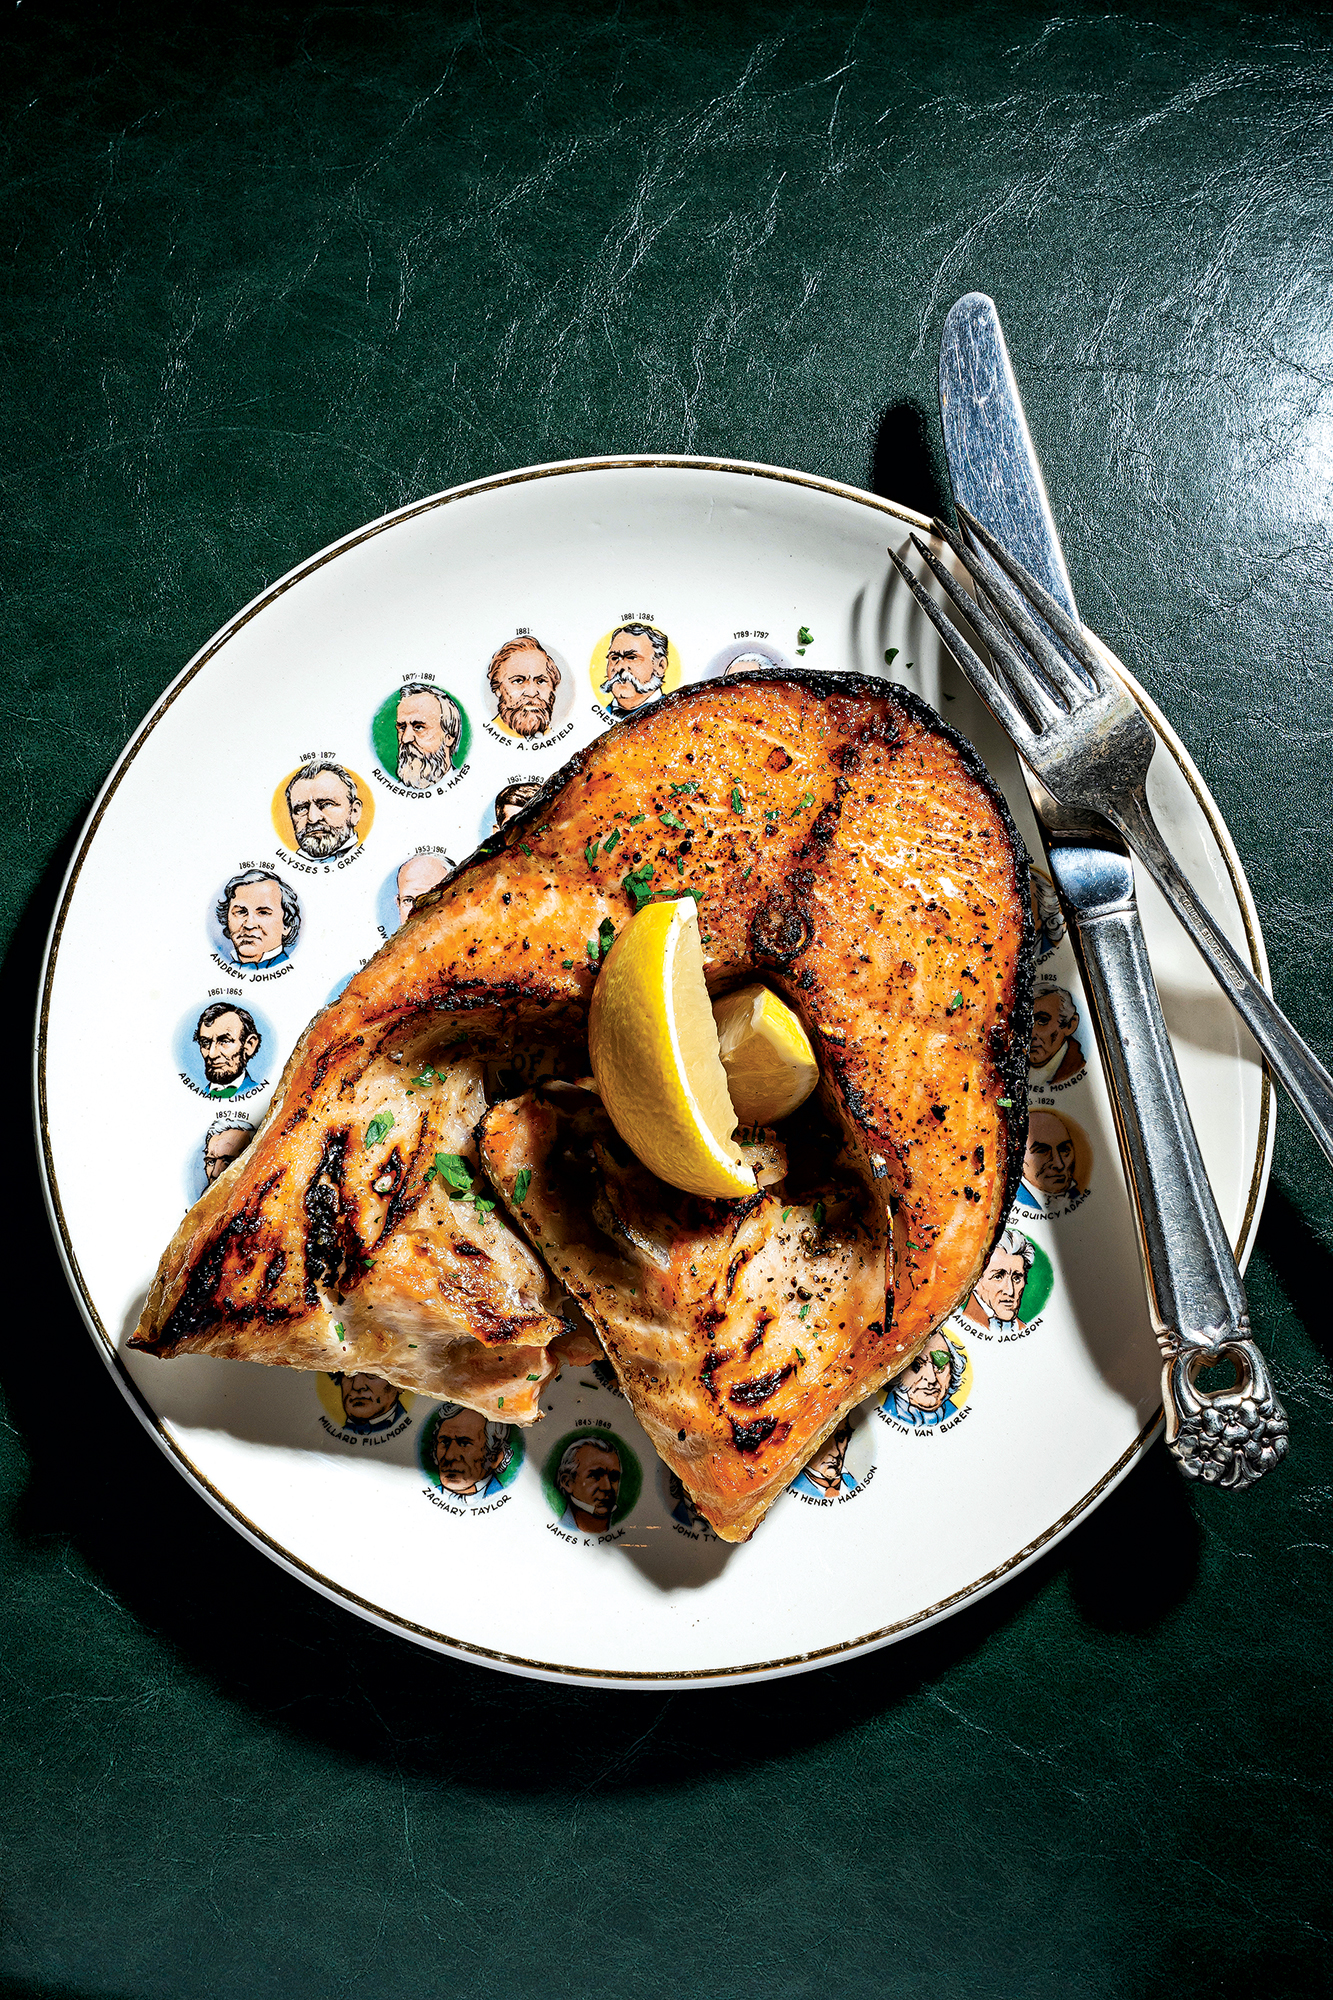 Grilled salmon collar at St. Anselm, the new restaurant from Stephen Starr and Joe Carroll. Photograph by Scott Suchman.